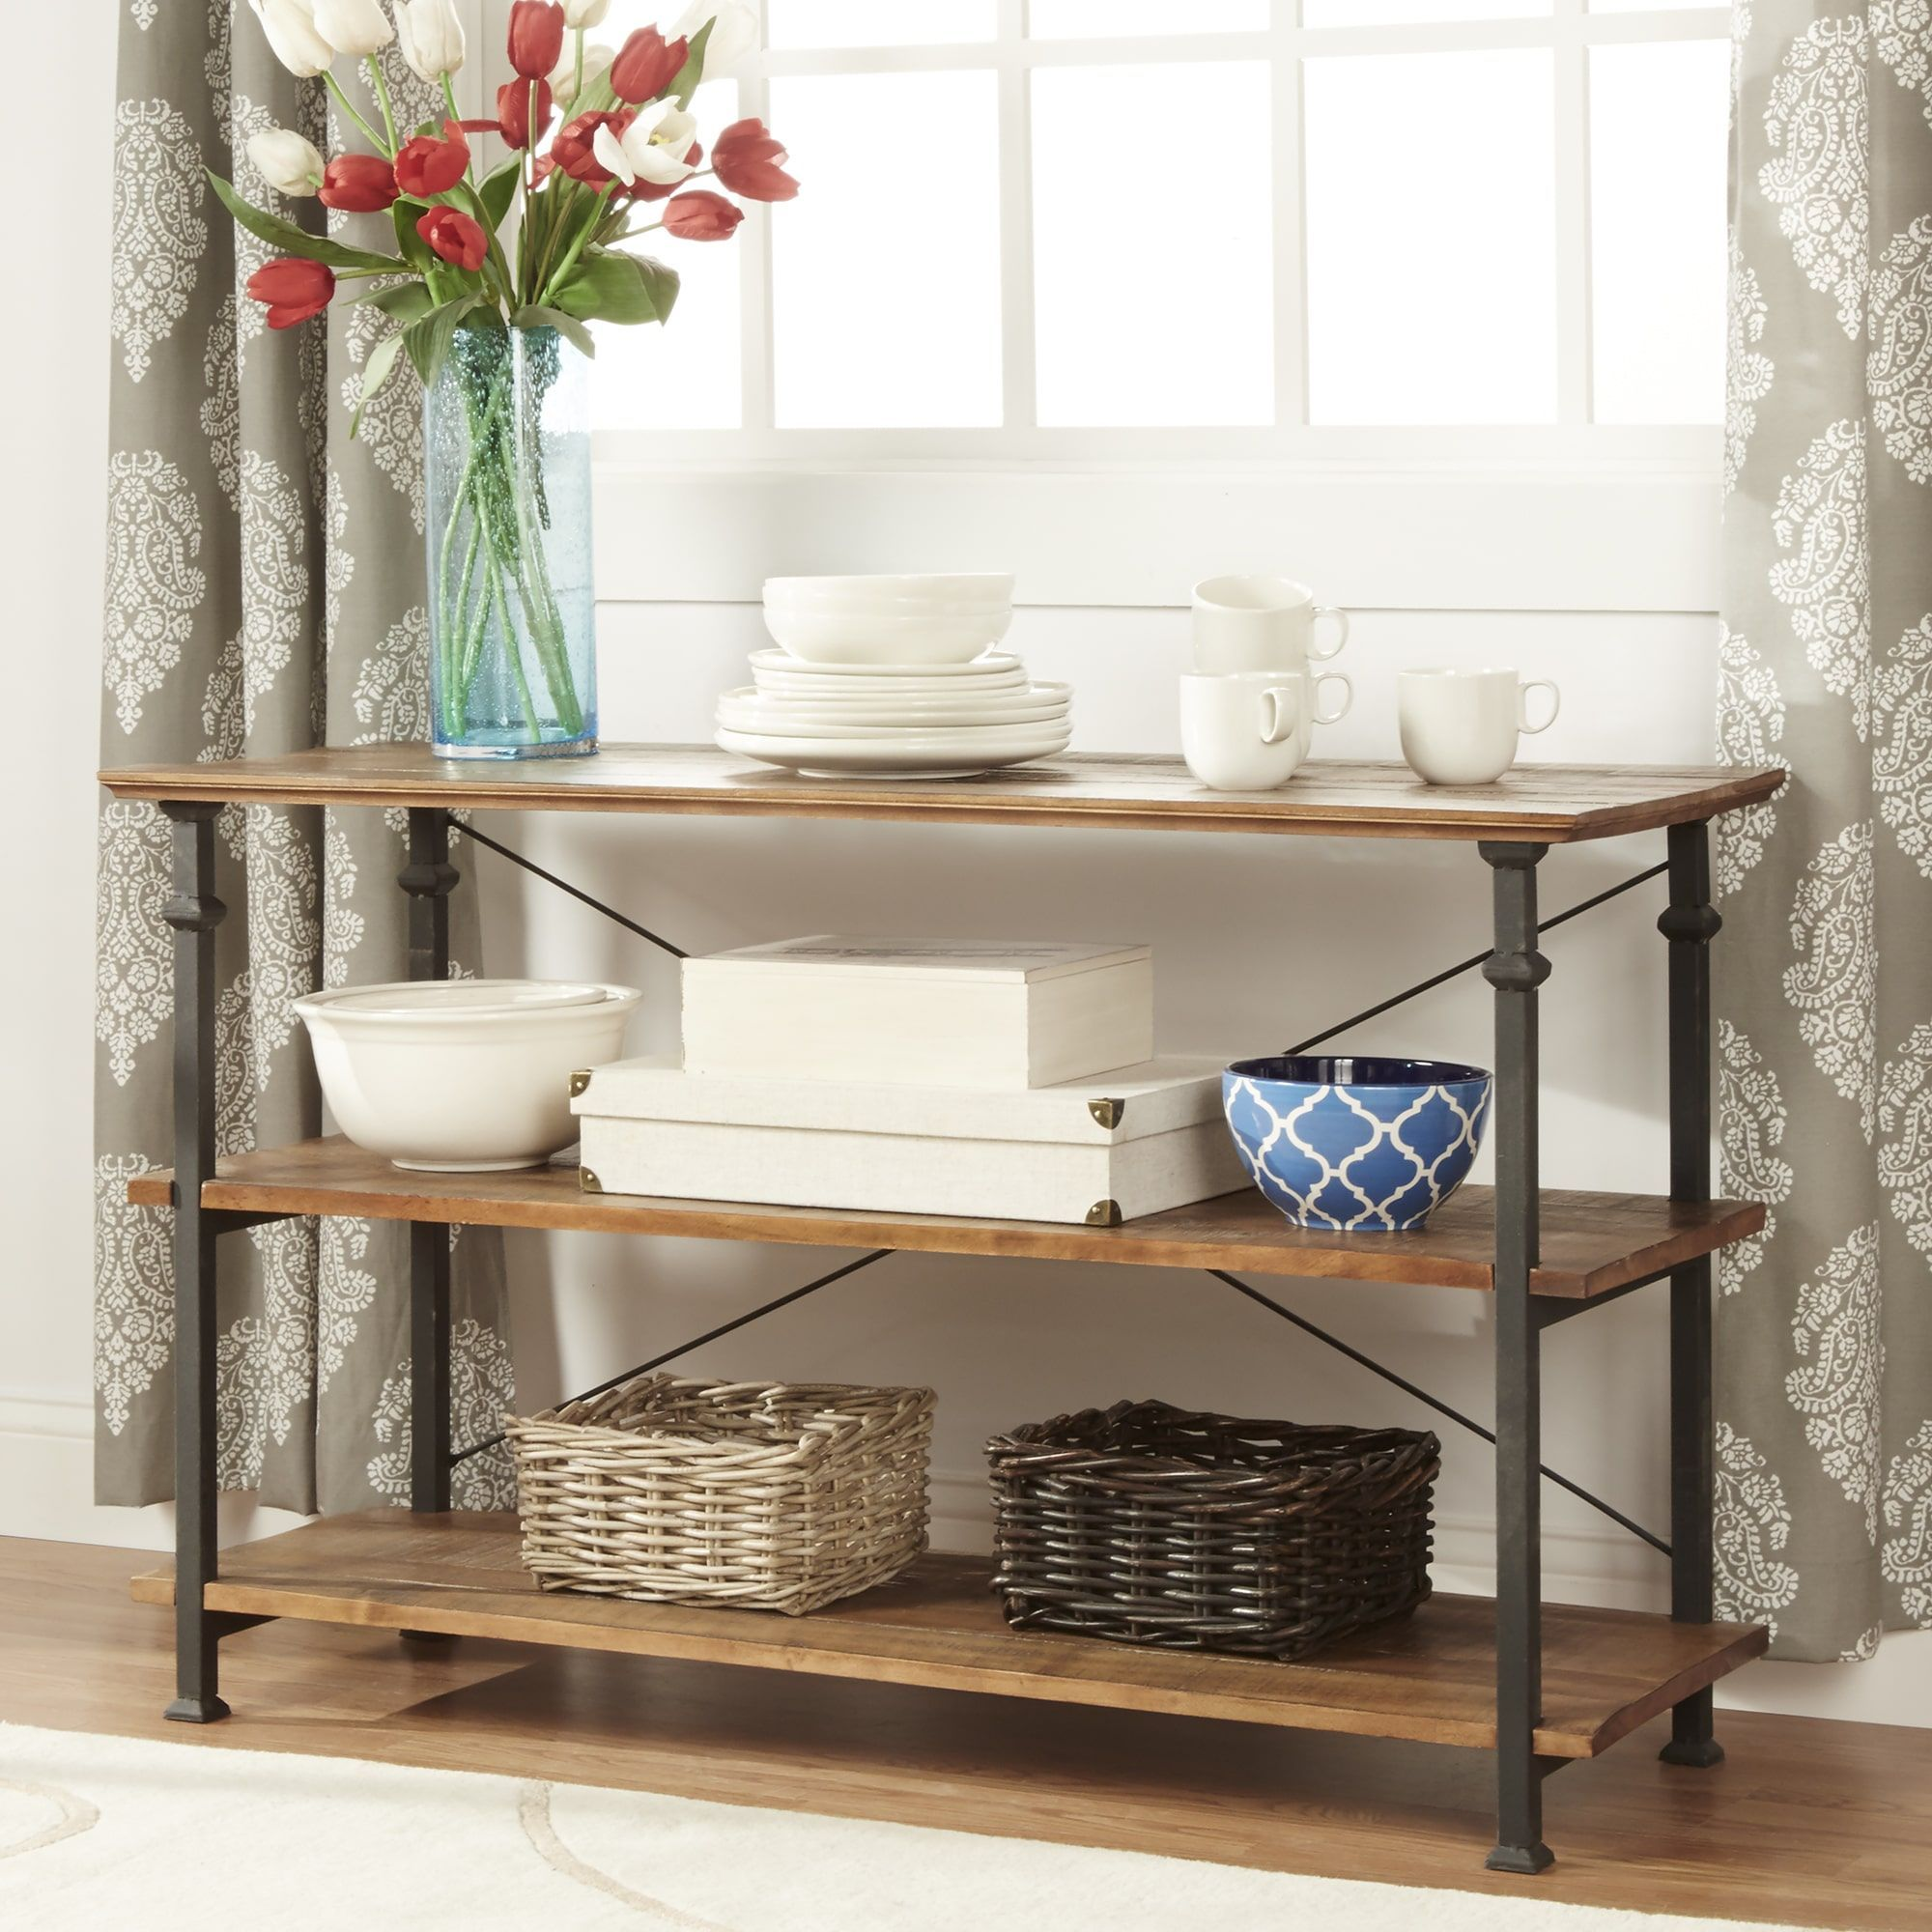 Myra Vintage Industrial TV Stand Entryway Table by iNSPIRE Q Classic